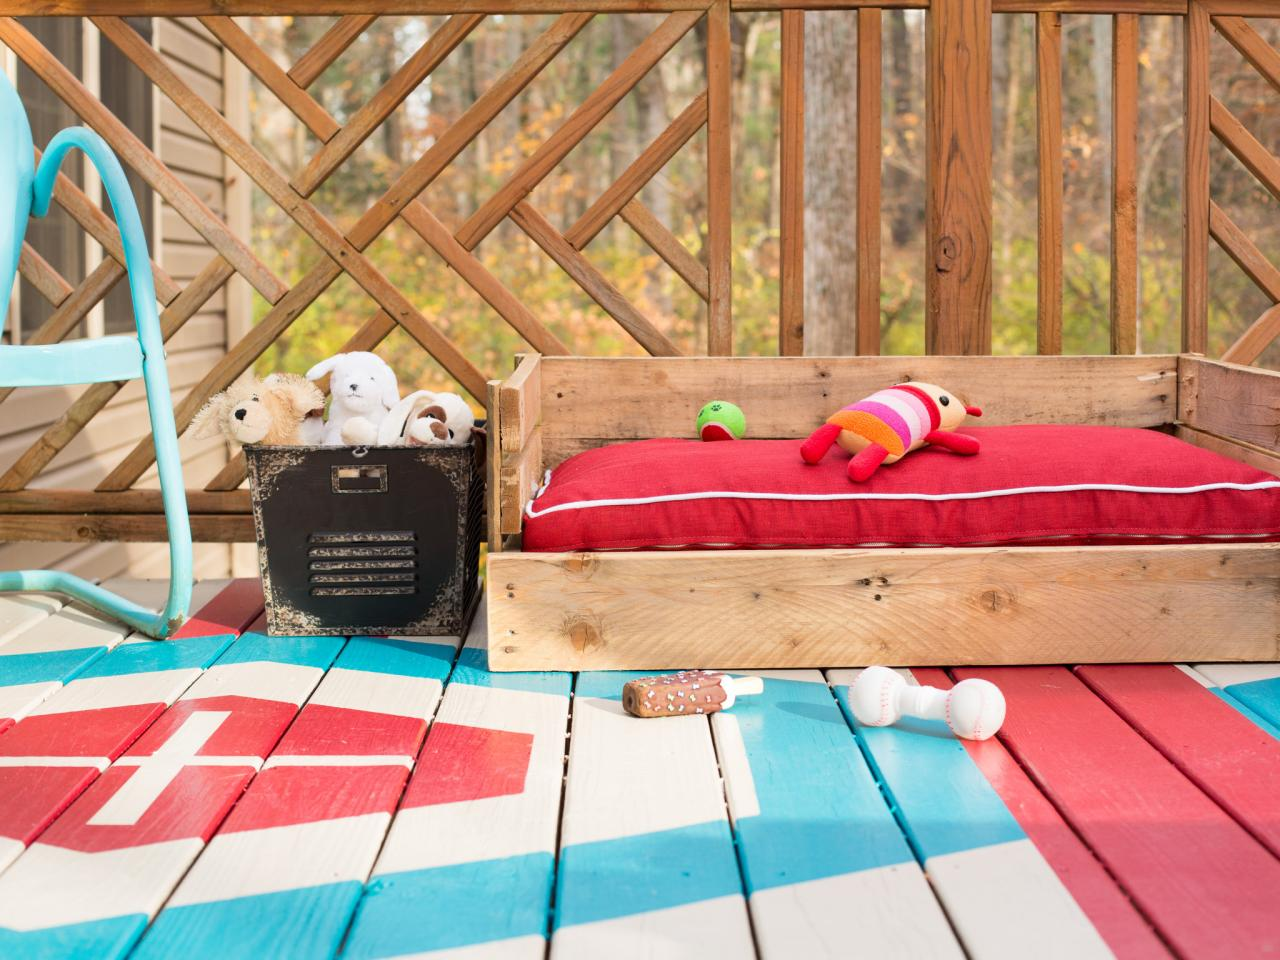 bpf_original_palette_dog bed 12_4x3 bedroomeasy eye upcycled pallet furniture ideas